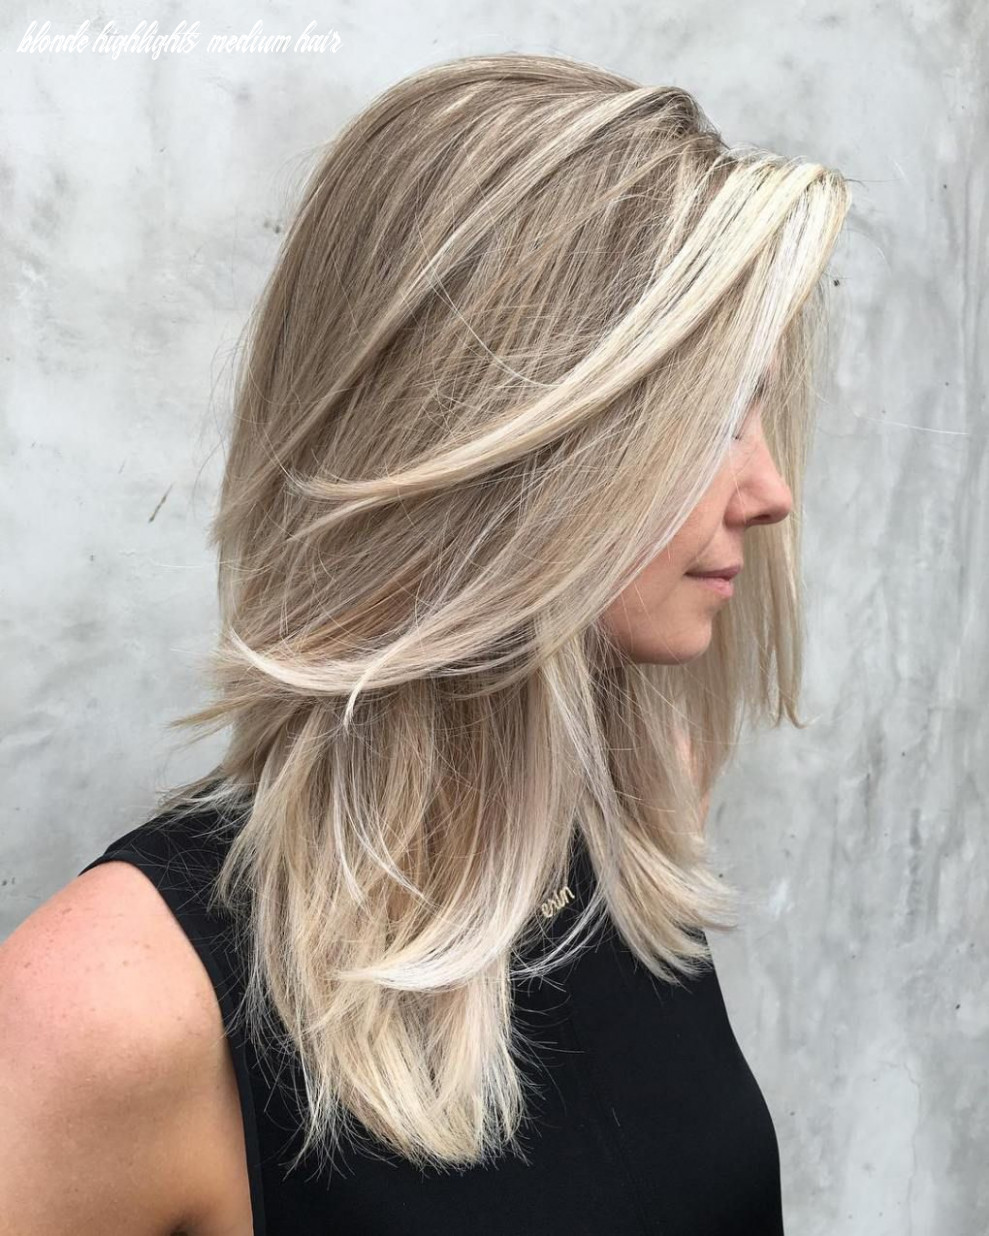 8 beautiful blonde hairstyles to play around with | long thin